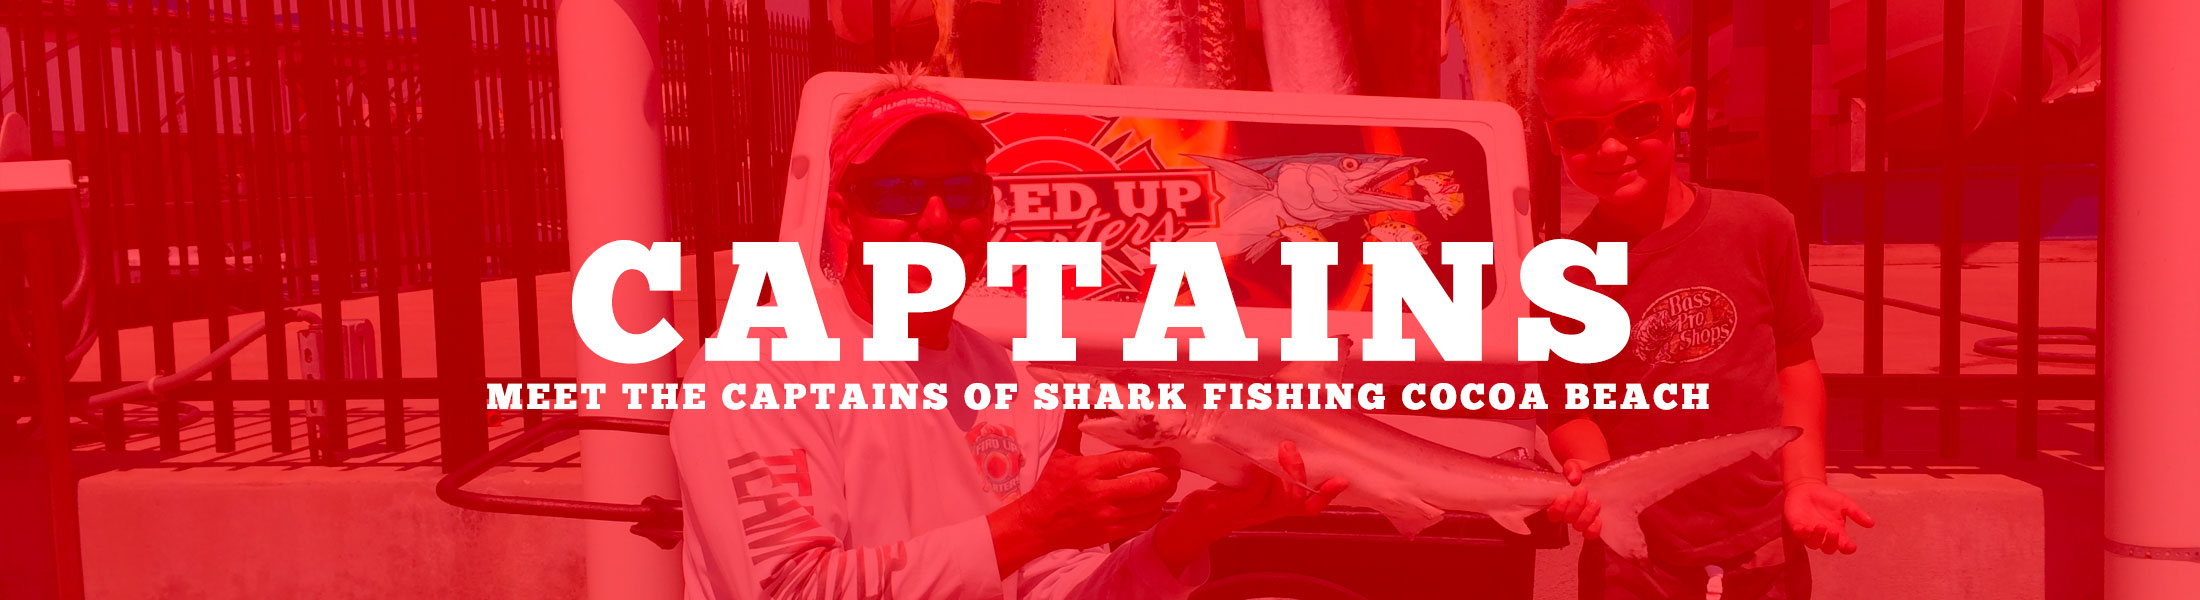 Shark Fishing Cocoa Beach has the best captains in Cape Canaveral.